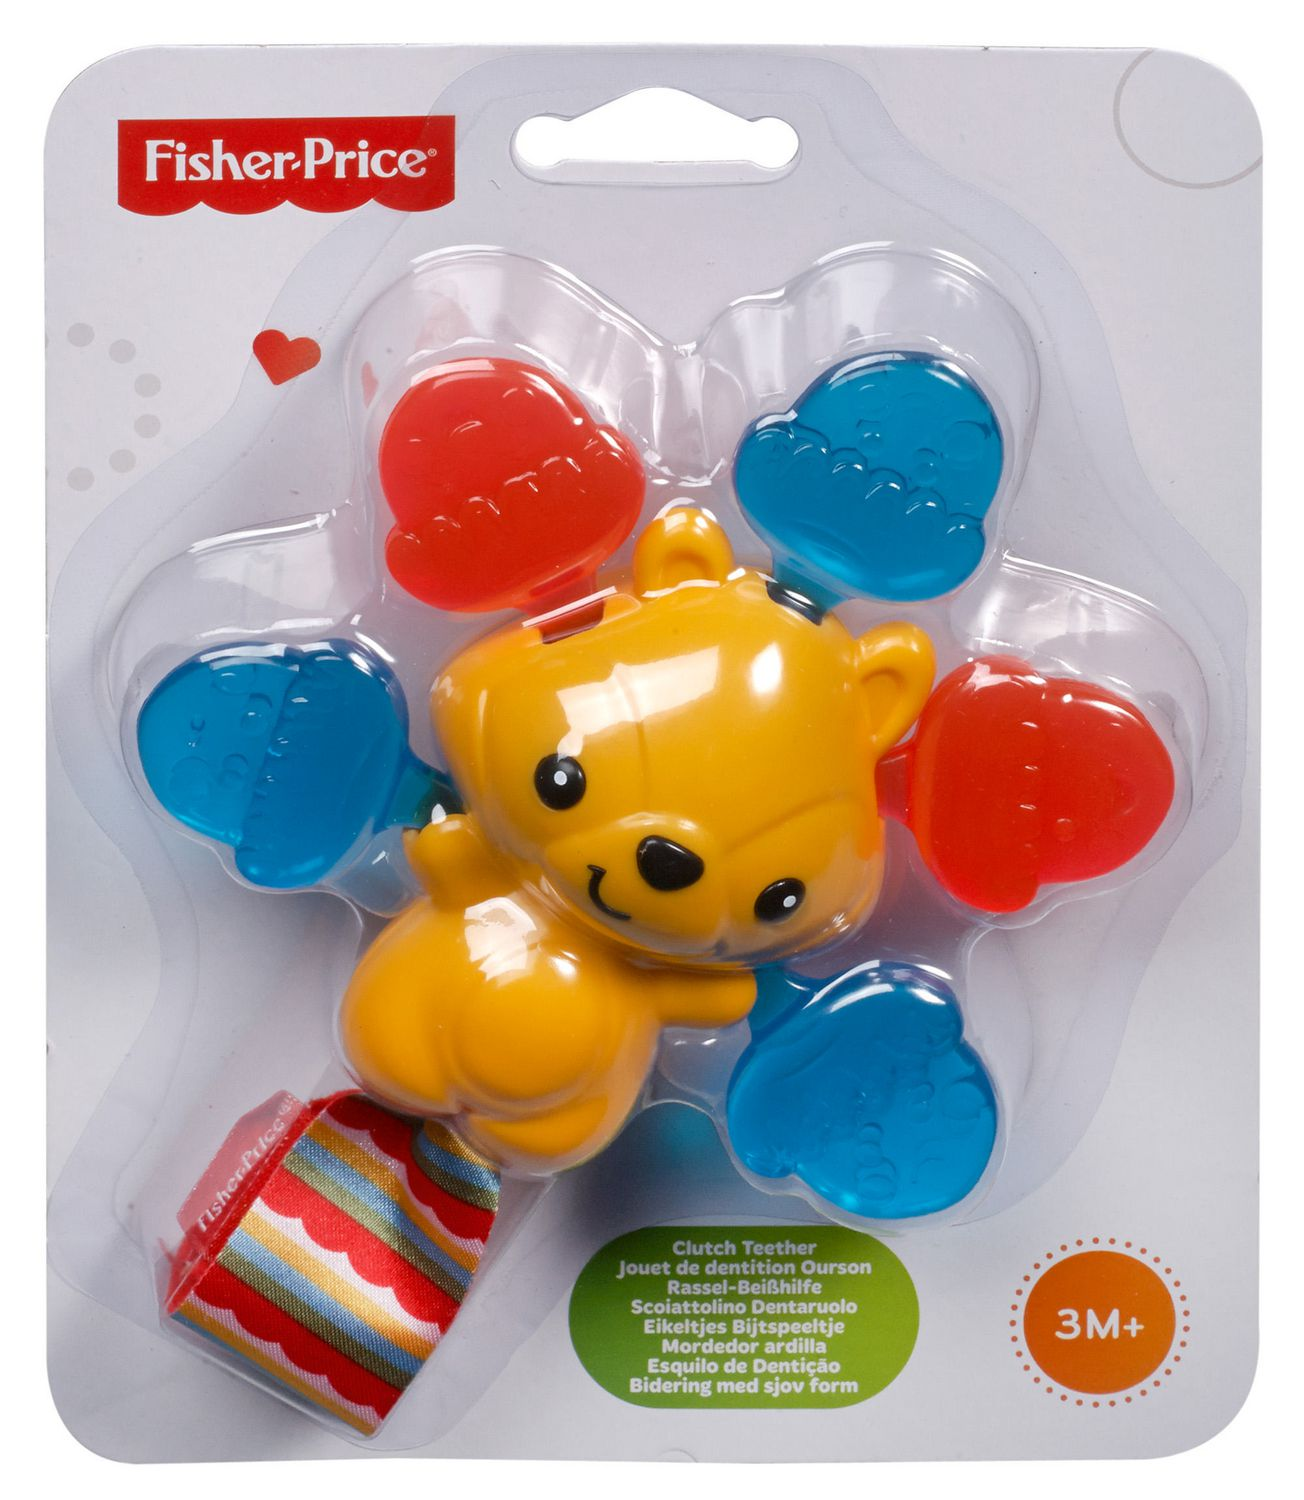 Fisher Price Teether Clutch